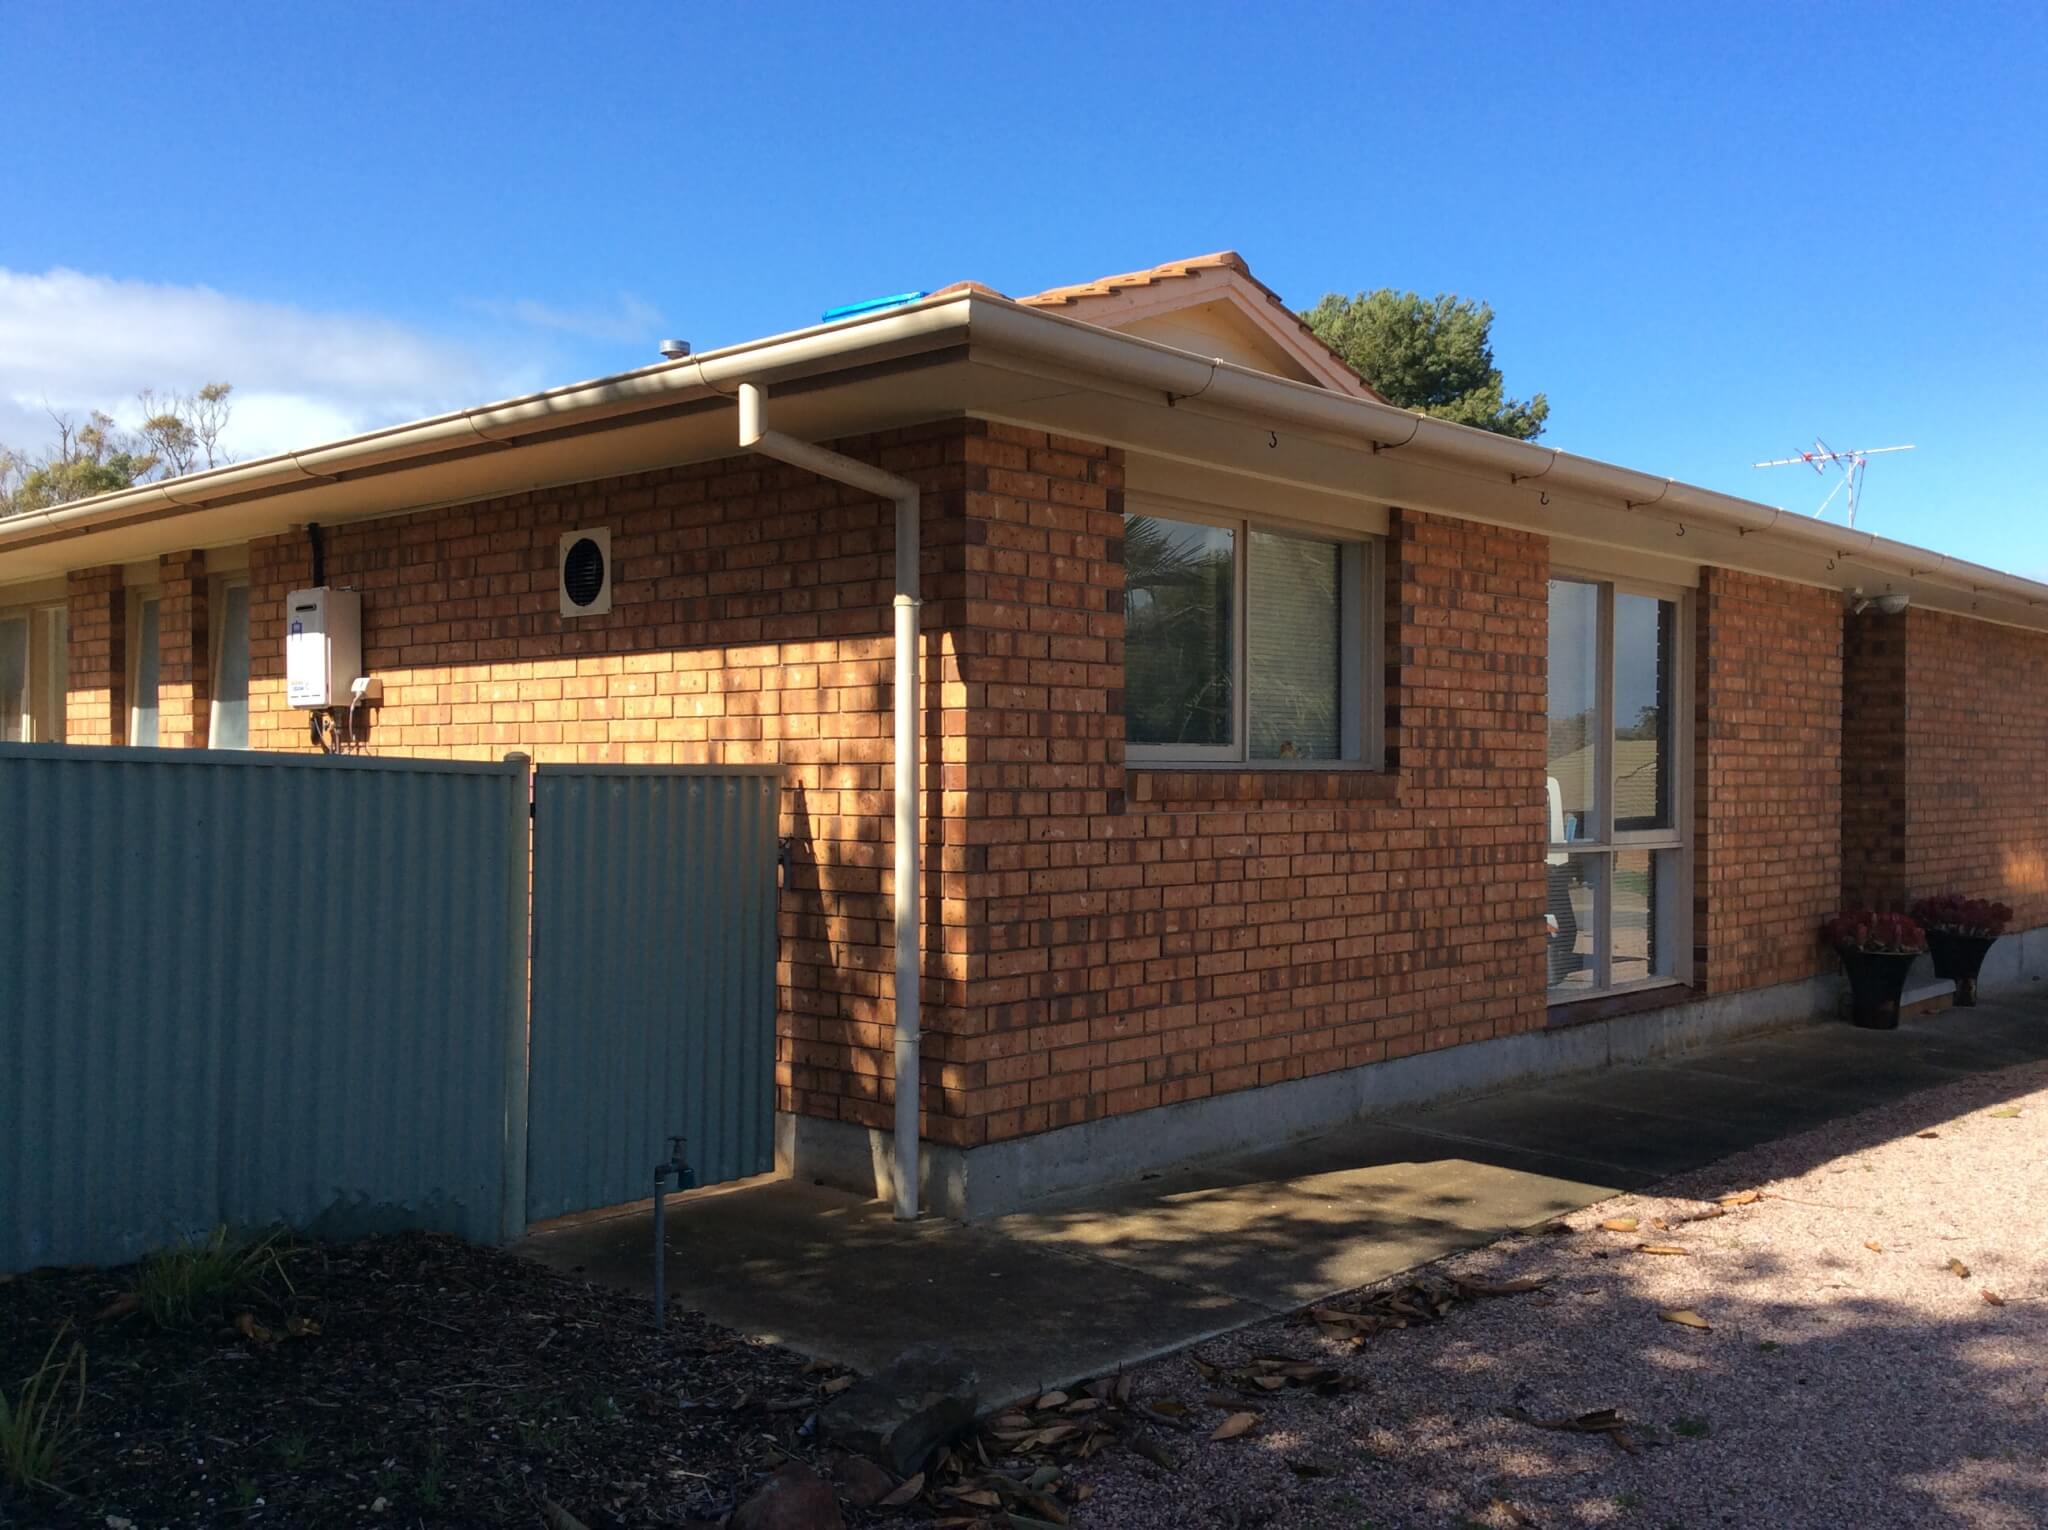 Building Inspection Oaklands Park, Adelaide – HomeMasters 8326 8885